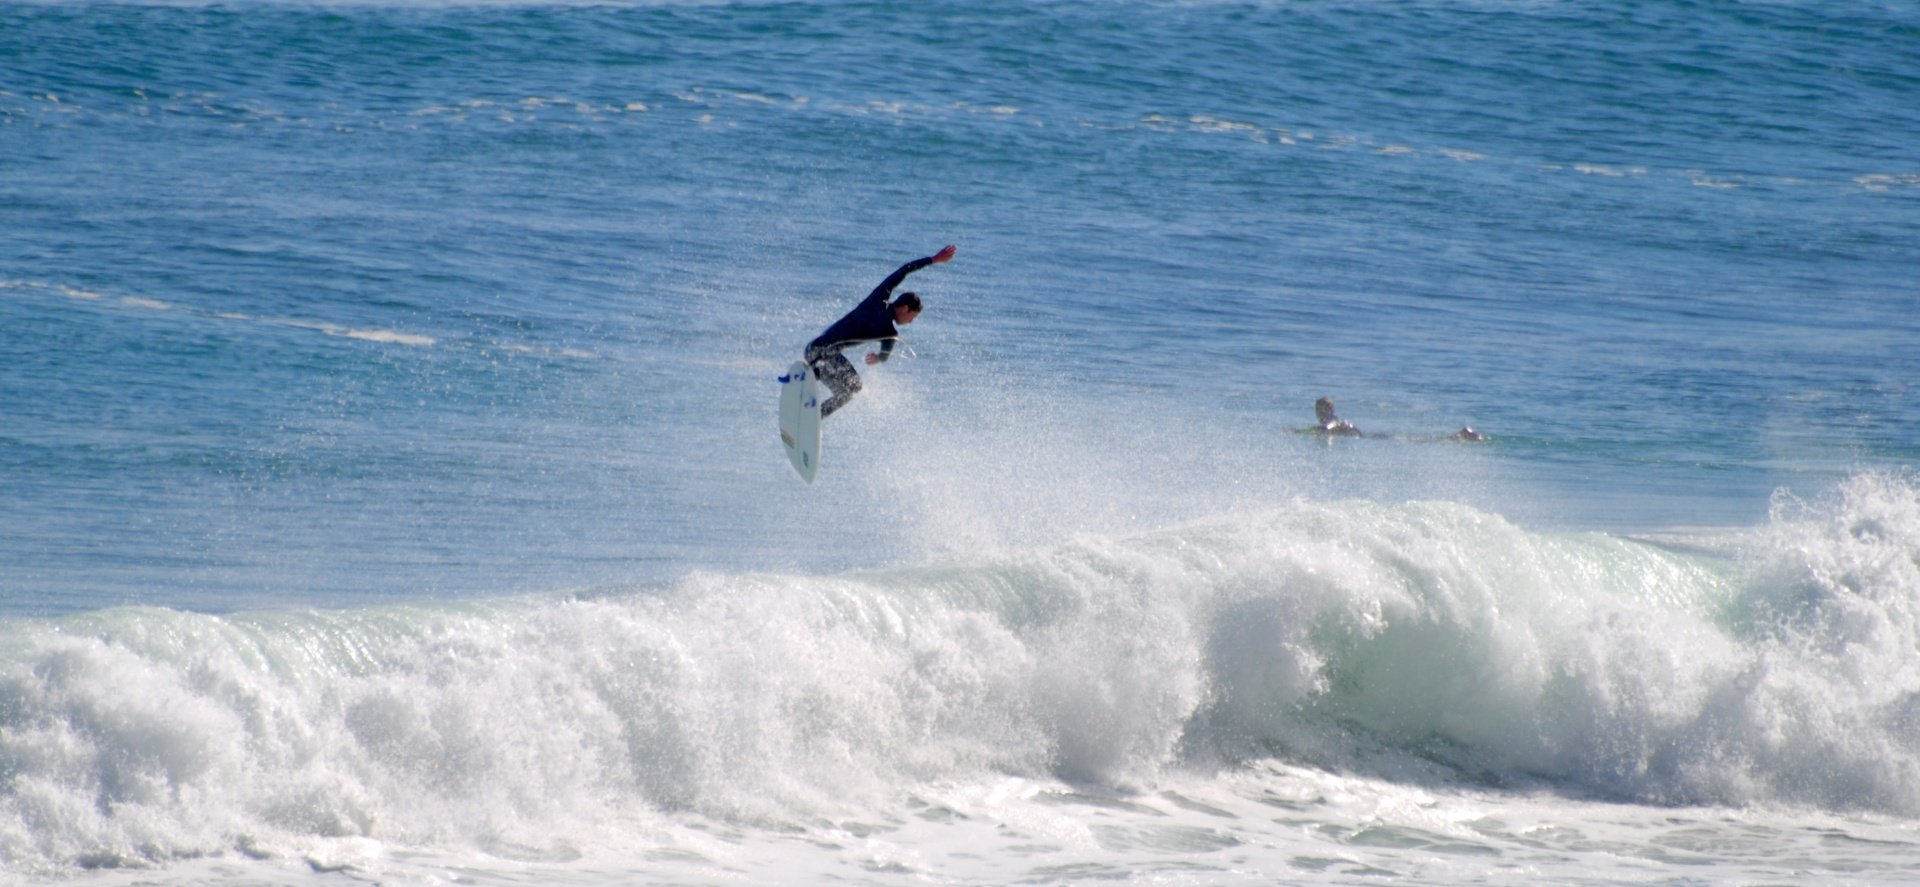 Luis Lopes's photo of Noordhoek